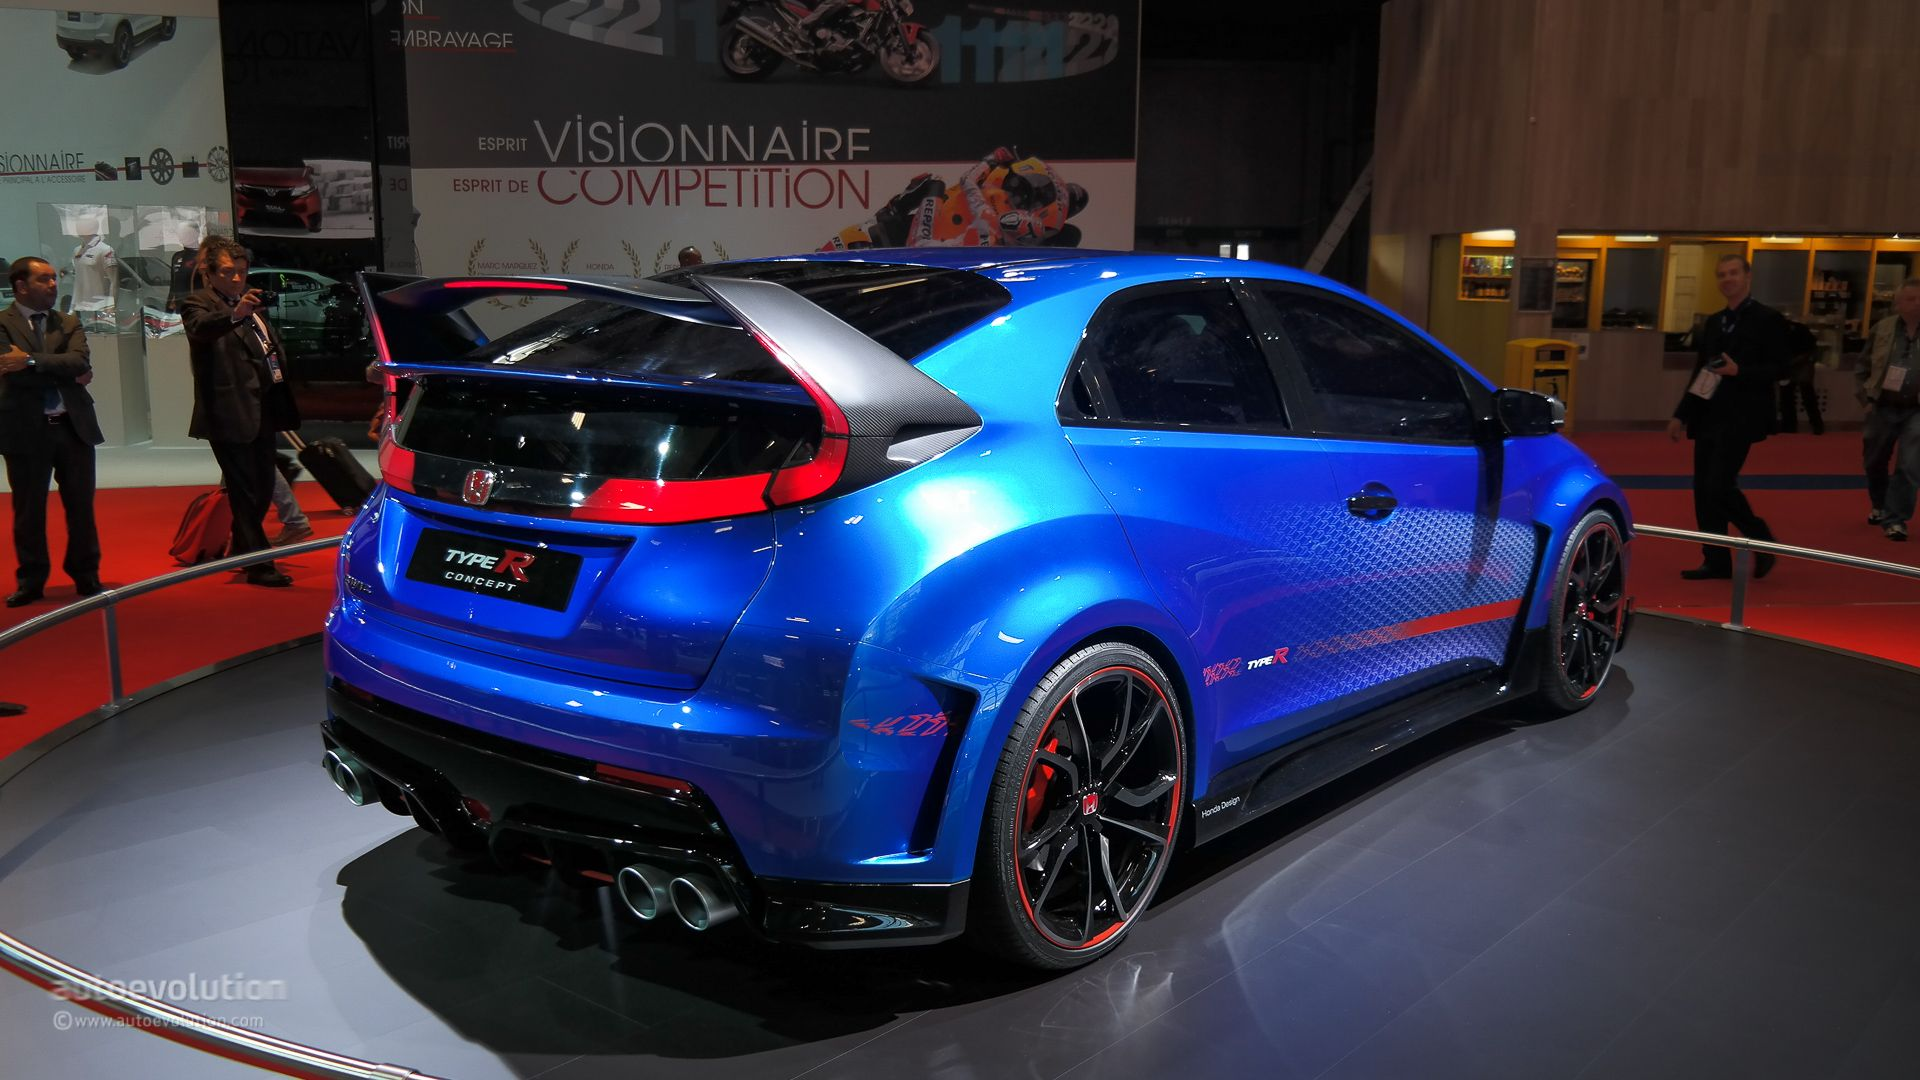 Beau These Are The Latest Pictures Of The All New Honda Civic Type R Ahead Of  Its Launch In 2015